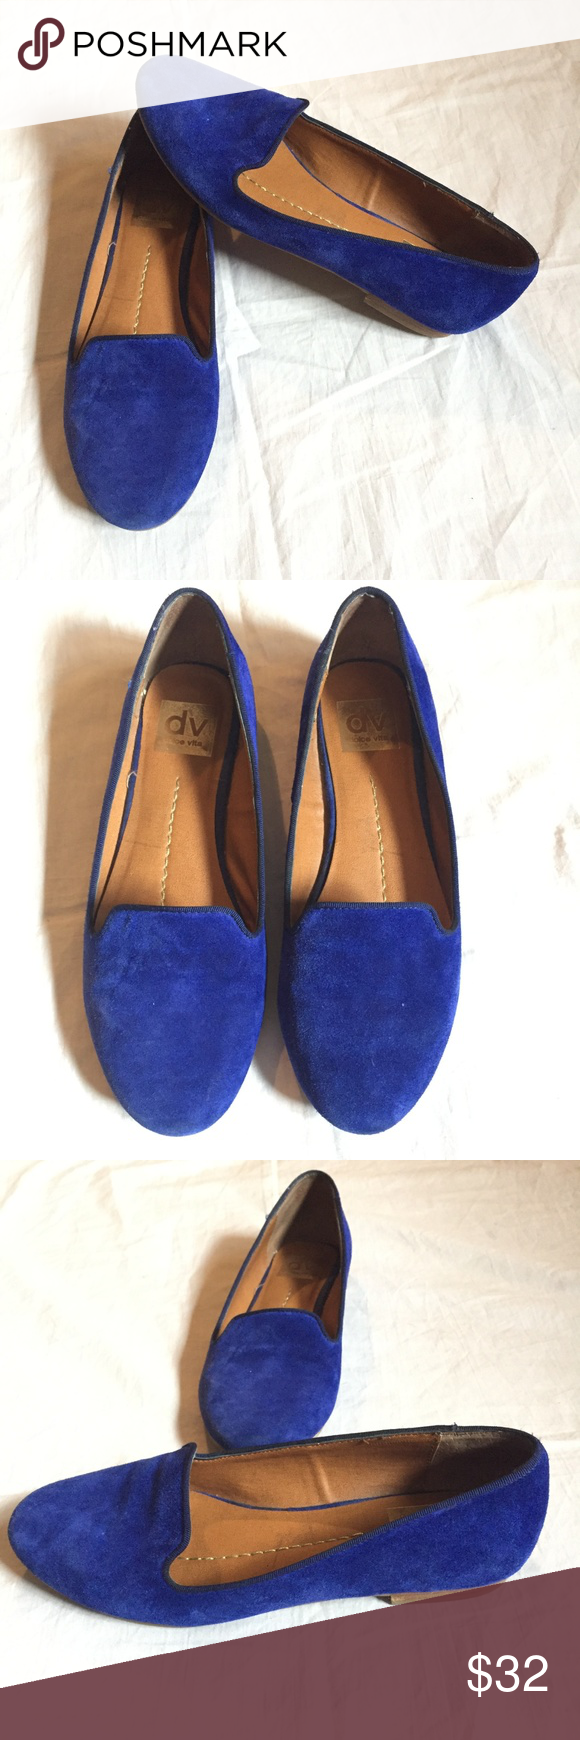 b57b12a2517 DV Blue Suede Loafers Smoking Flats Dolce Vita Blue Flats  Size  6.5  Excellent used condition